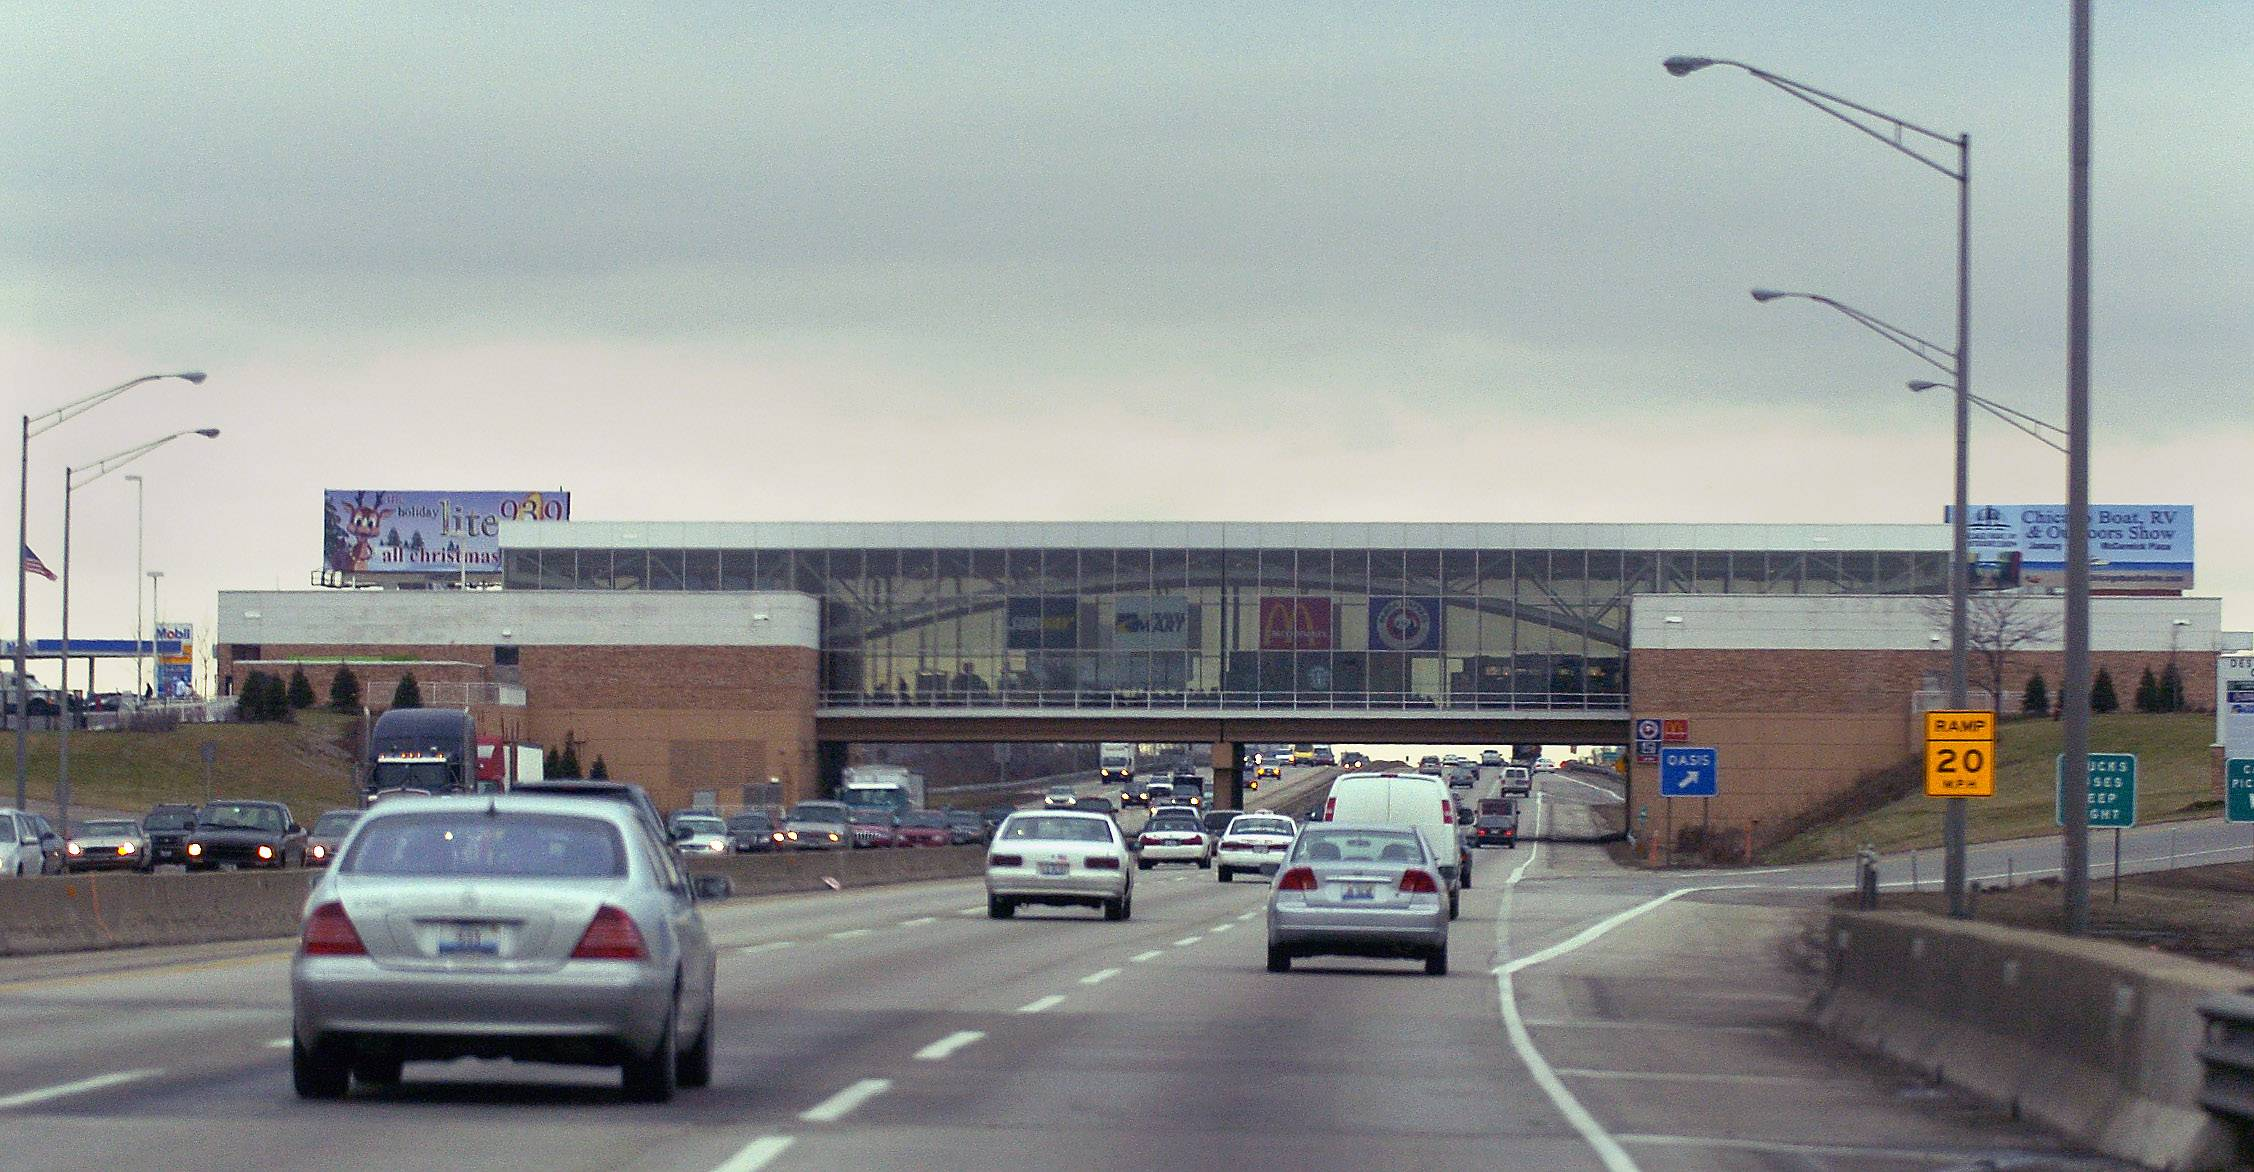 Daily Herald File PhotoIt's curtains for the iconic glass structure that is the Illinois tollway's Des Plaines oasis.